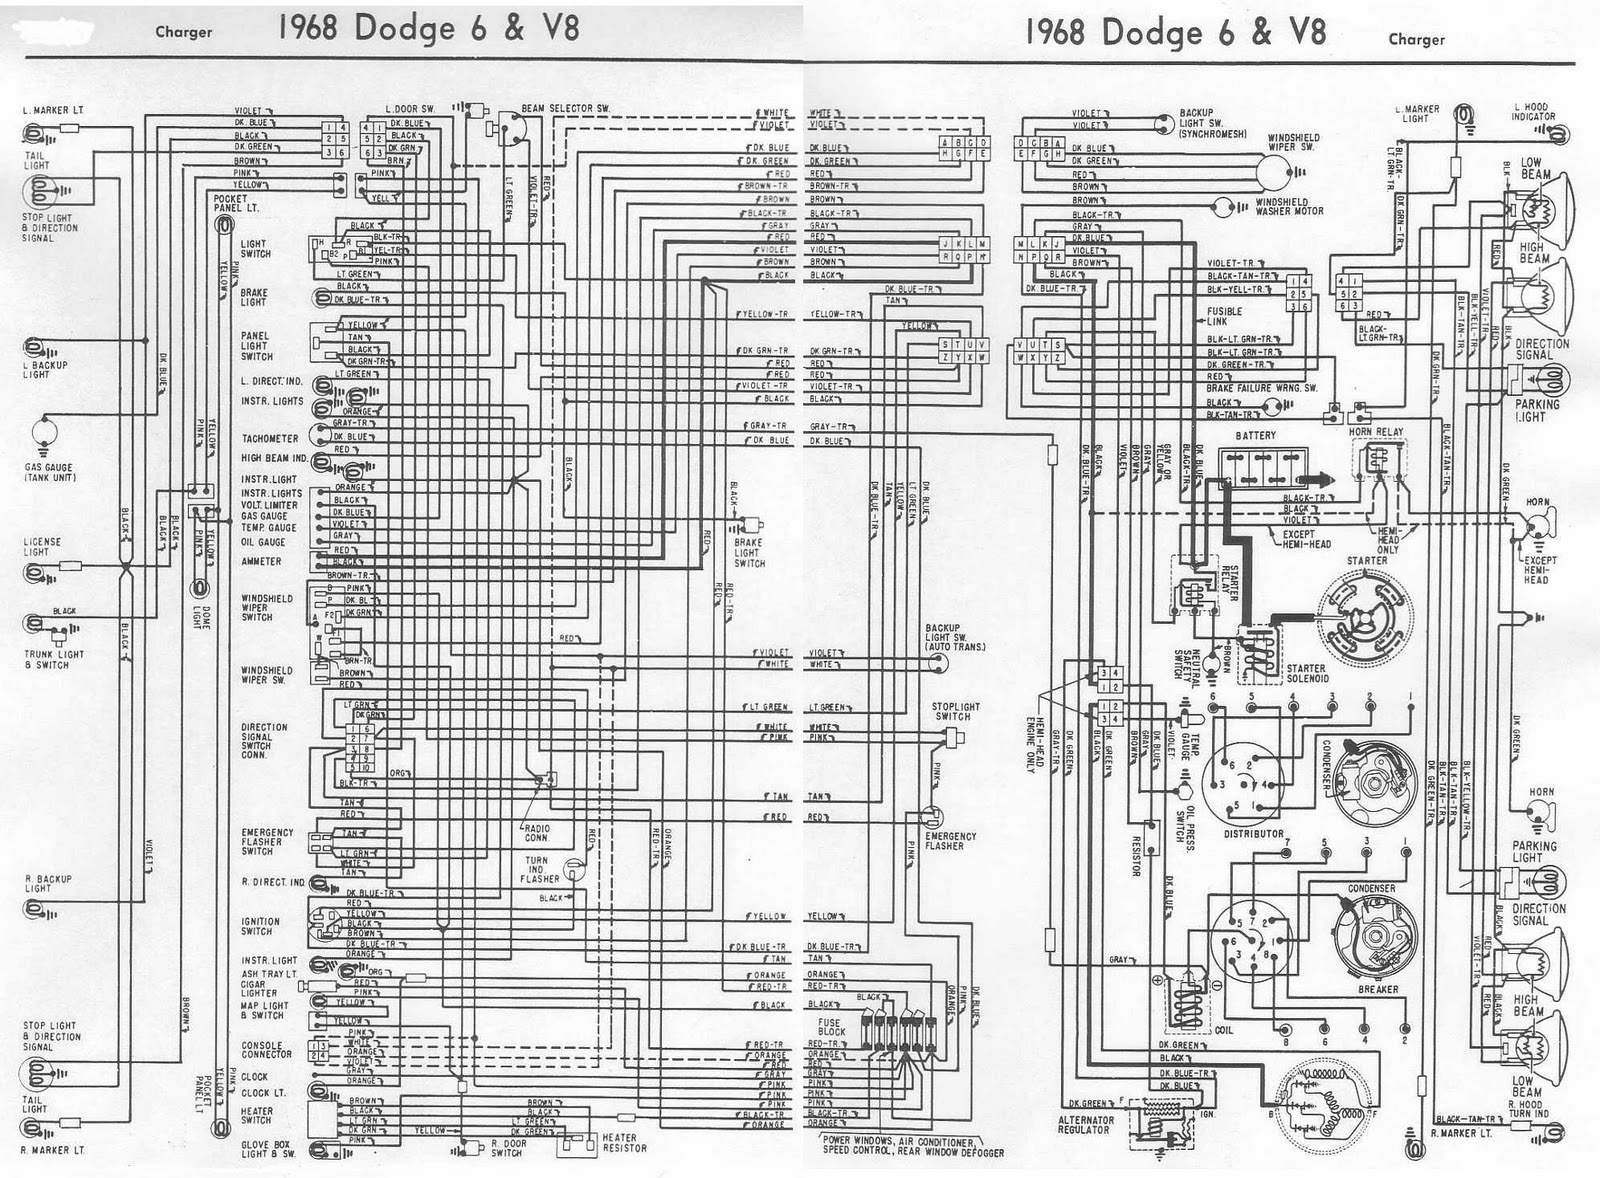 Dodge+Charger+1968+6+and+V8+Complete+Electrical+Wiring+Diagram dodge charger 1968 6 and v8 complete electrical wiring diagram 1967 dodge charger wiring diagram at mifinder.co